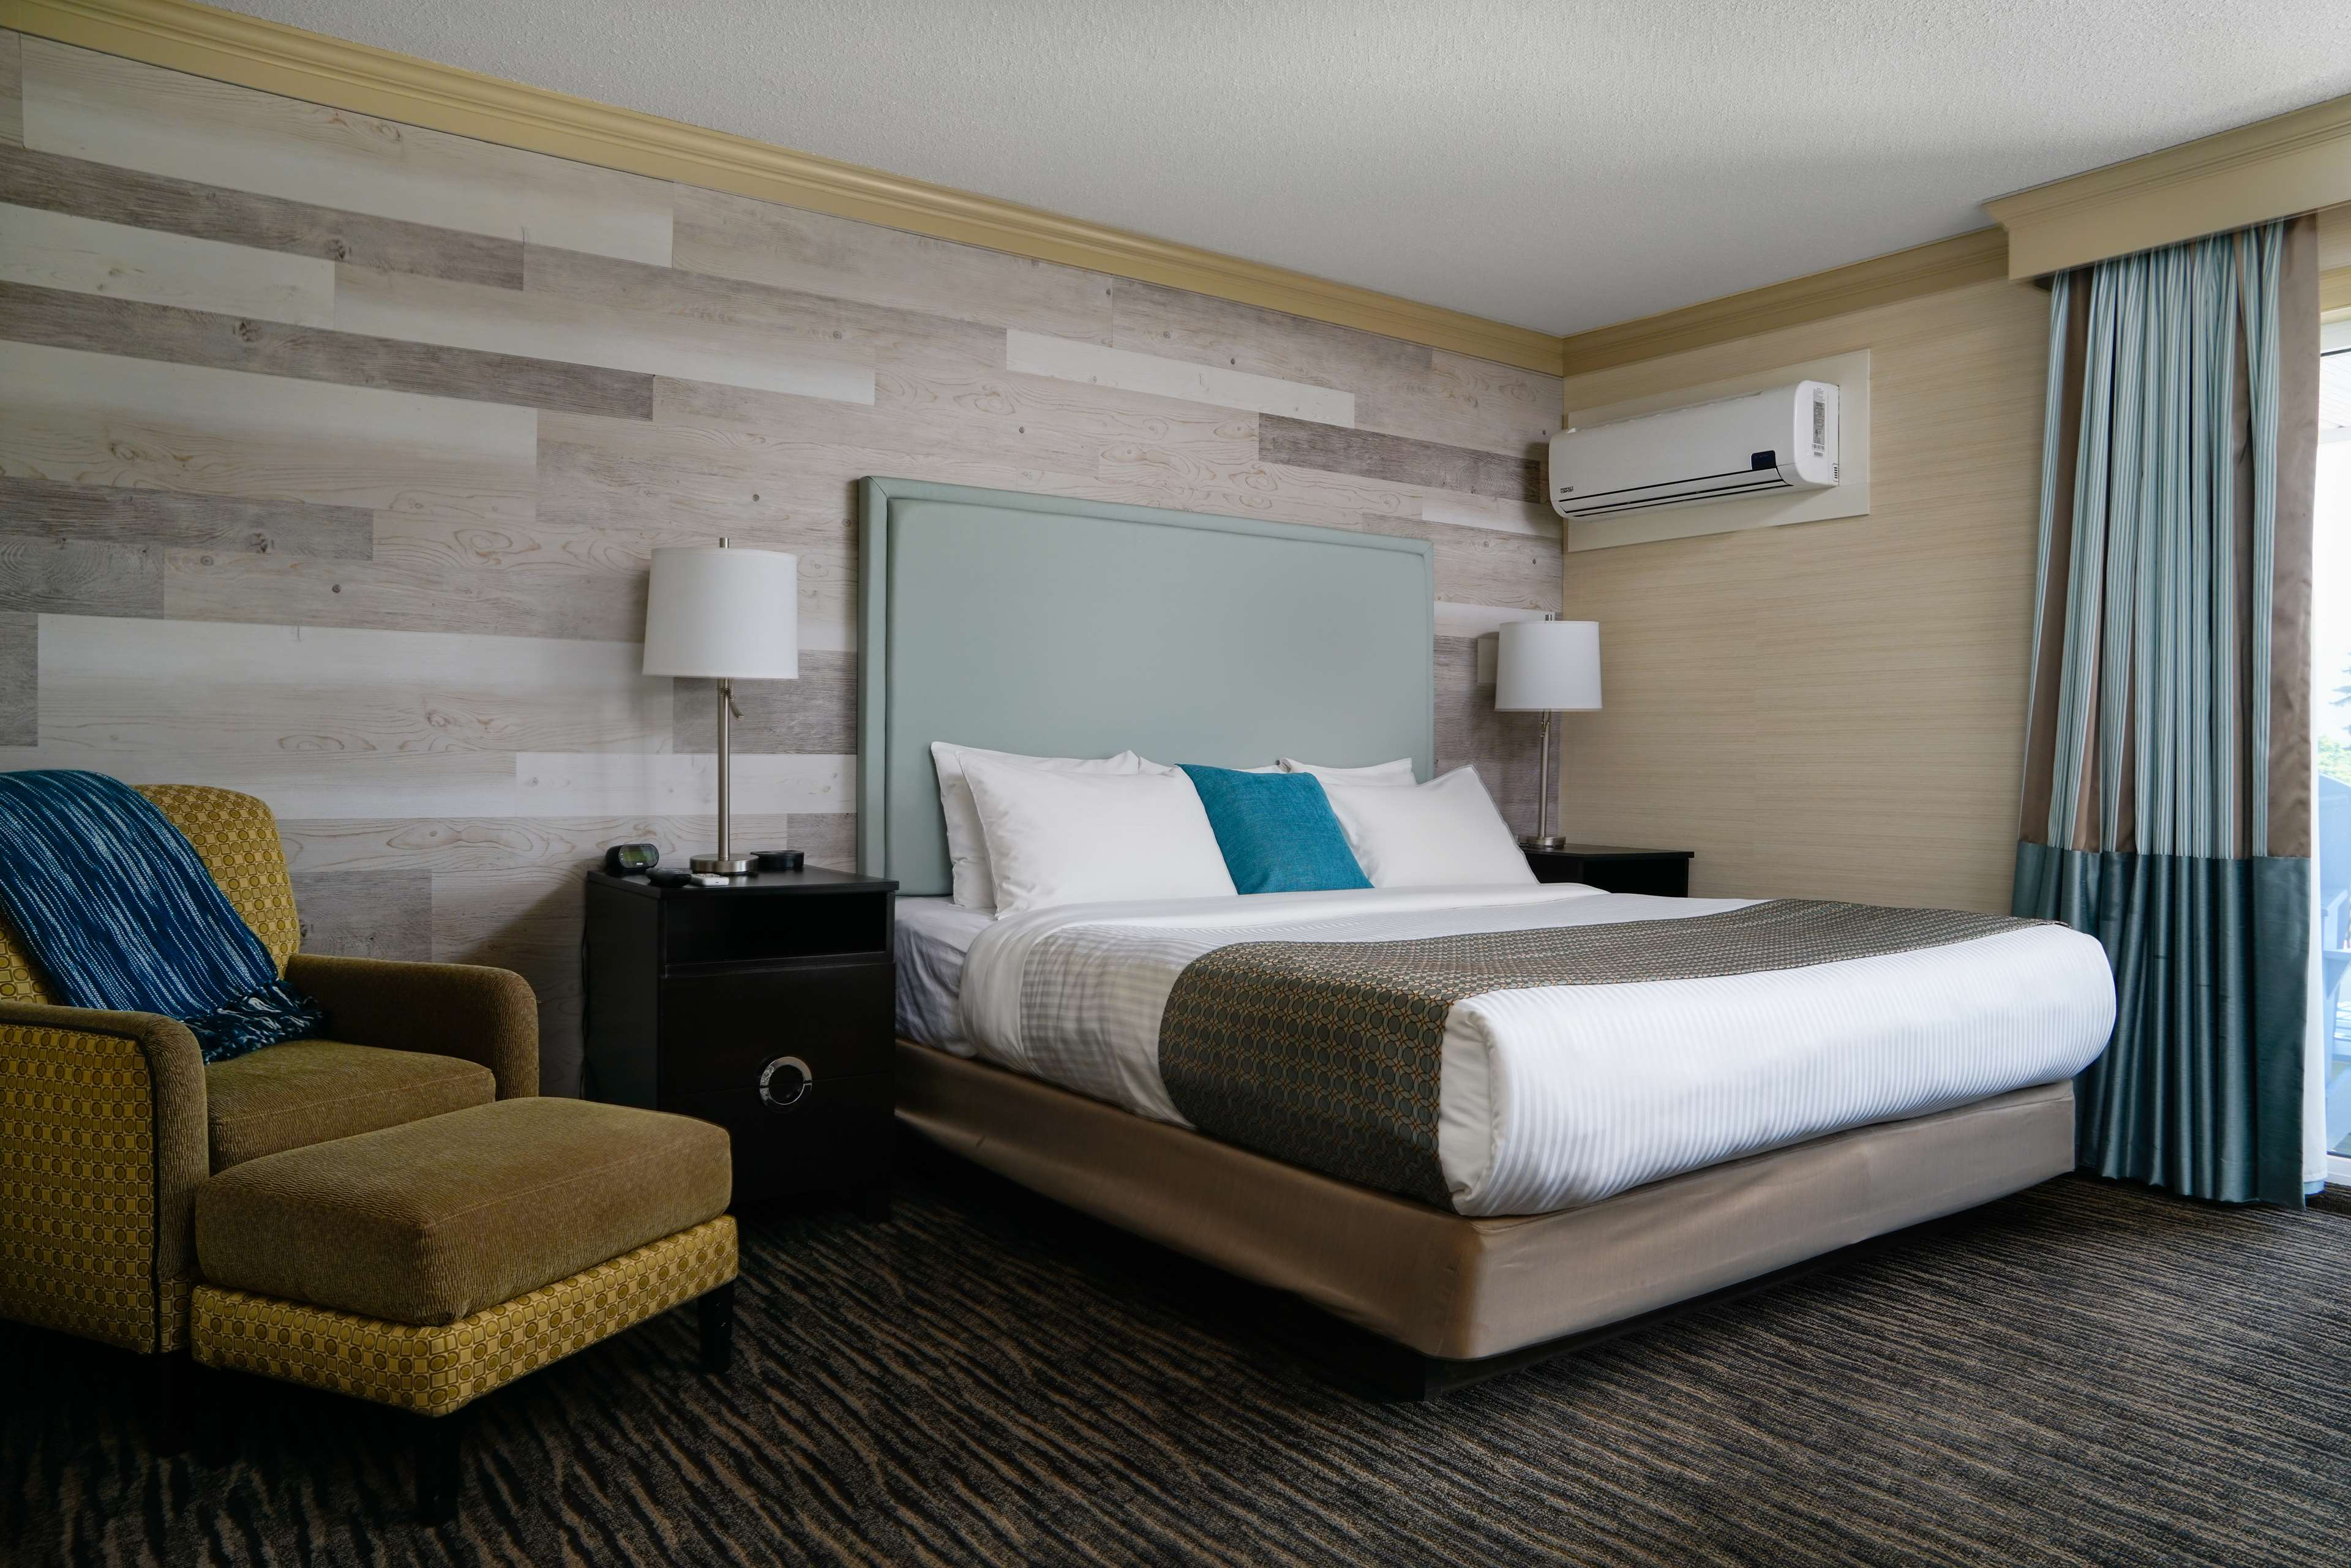 Prestige Beach House, BW Premier Collection in Kelowna: One King Guest Room